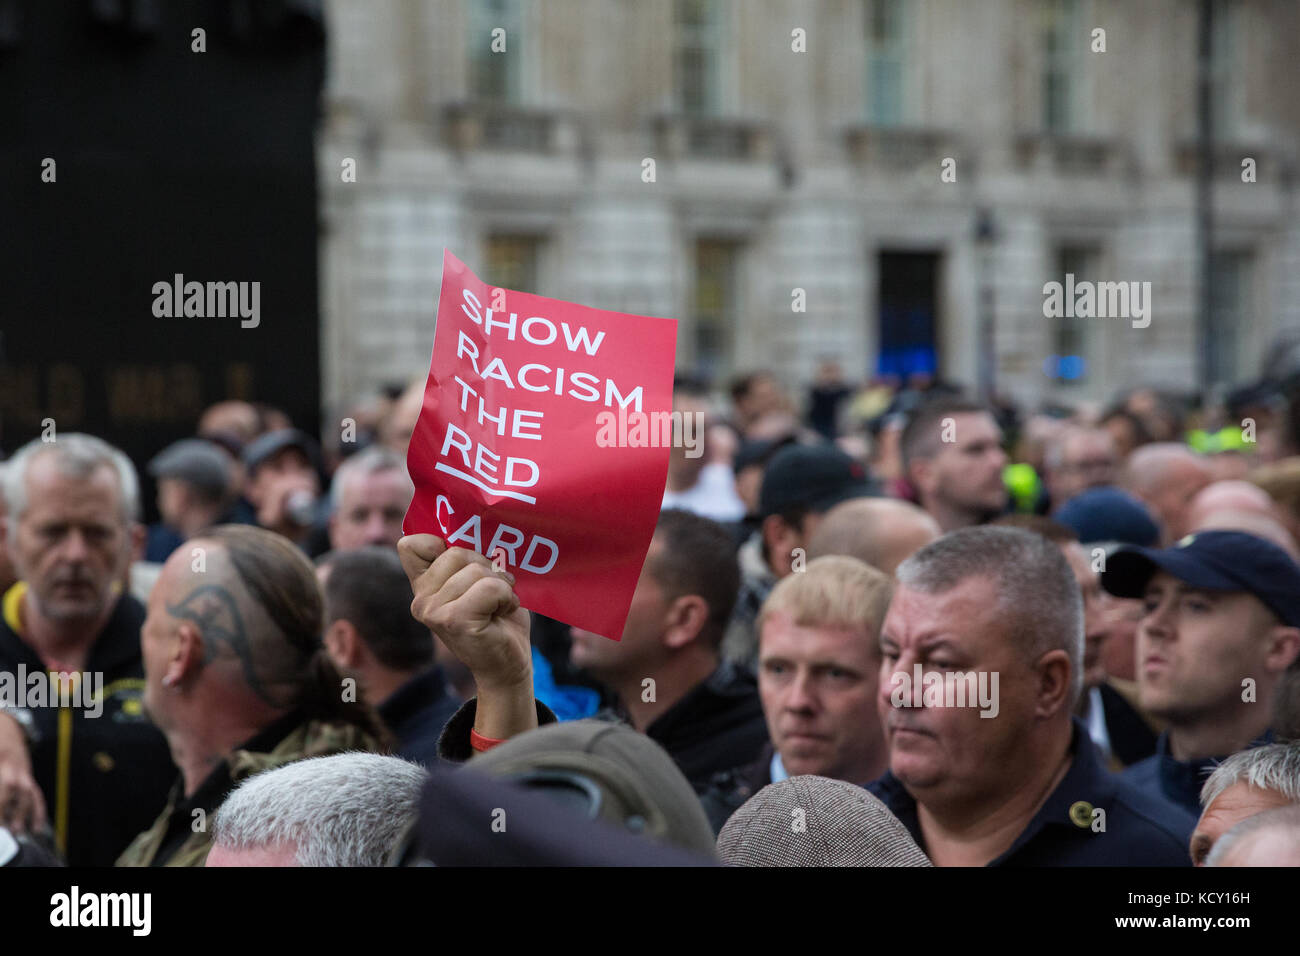 London, UK. 7th October, 2017. Supporters of the Football Lads Alliance (FLA) move past anti-racist campaigners - Stock Image